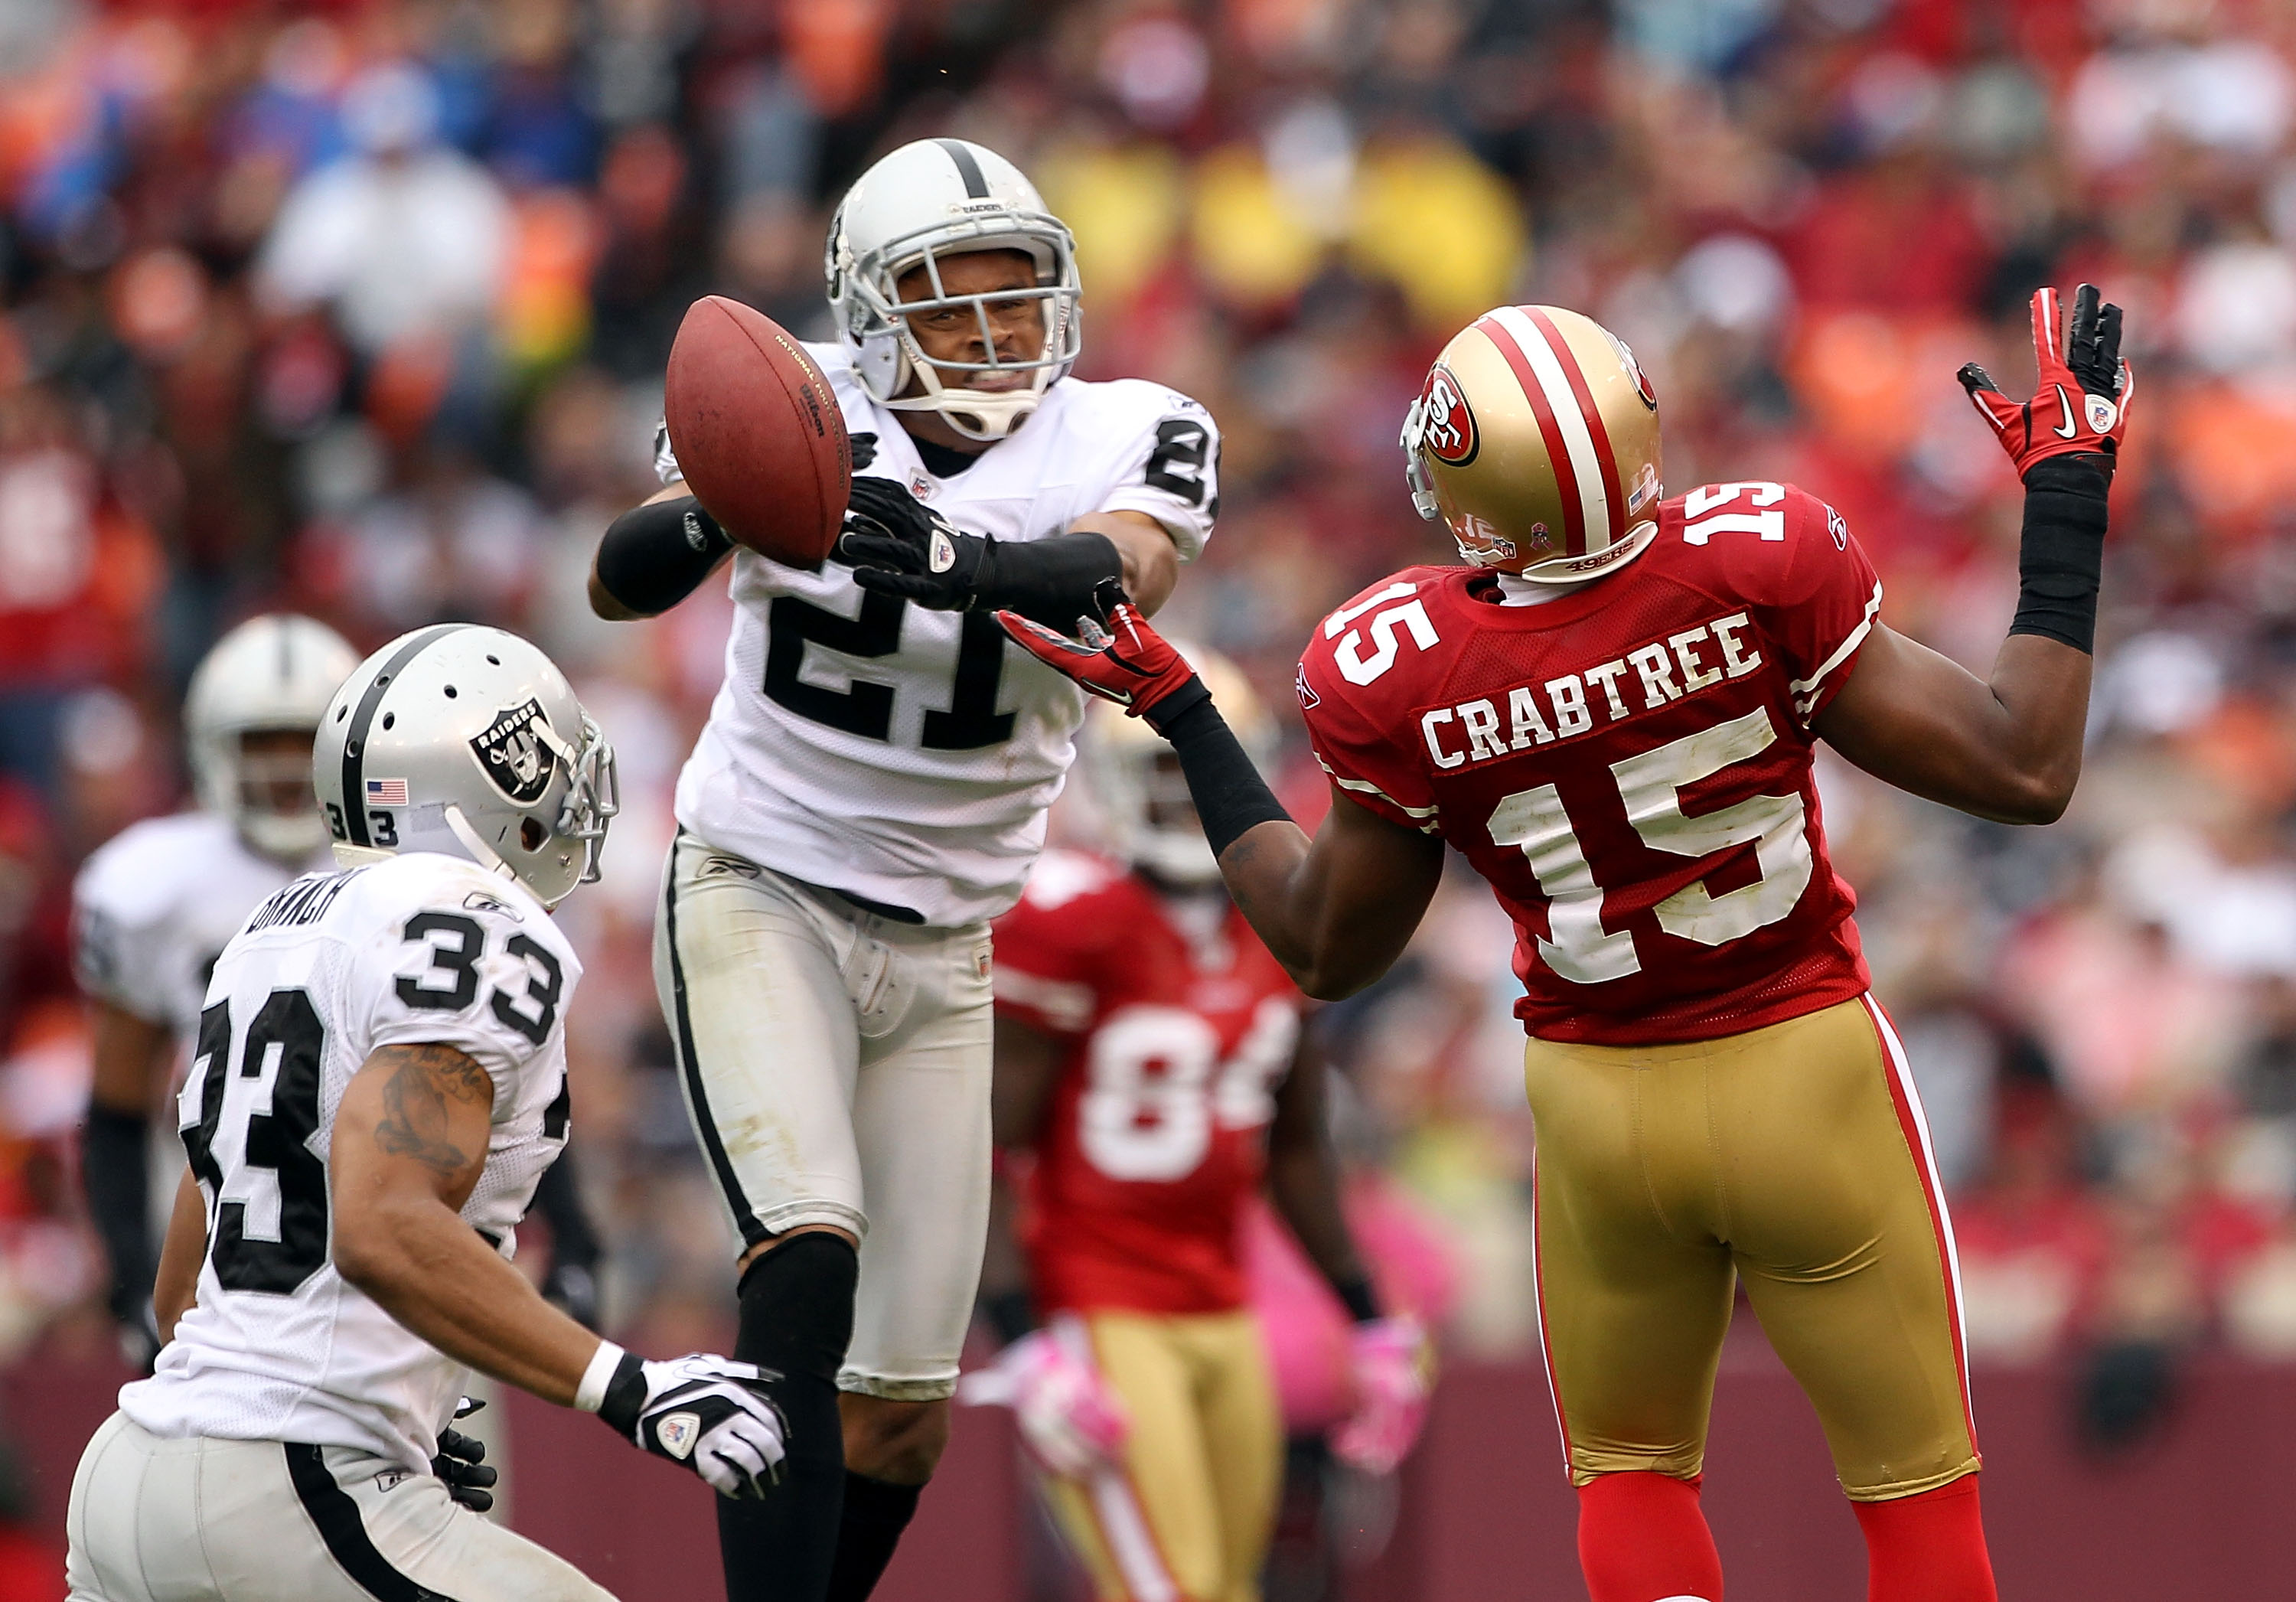 WR Michael Crabtree speechless as the best CB in the NFL assist in catching the pigskin